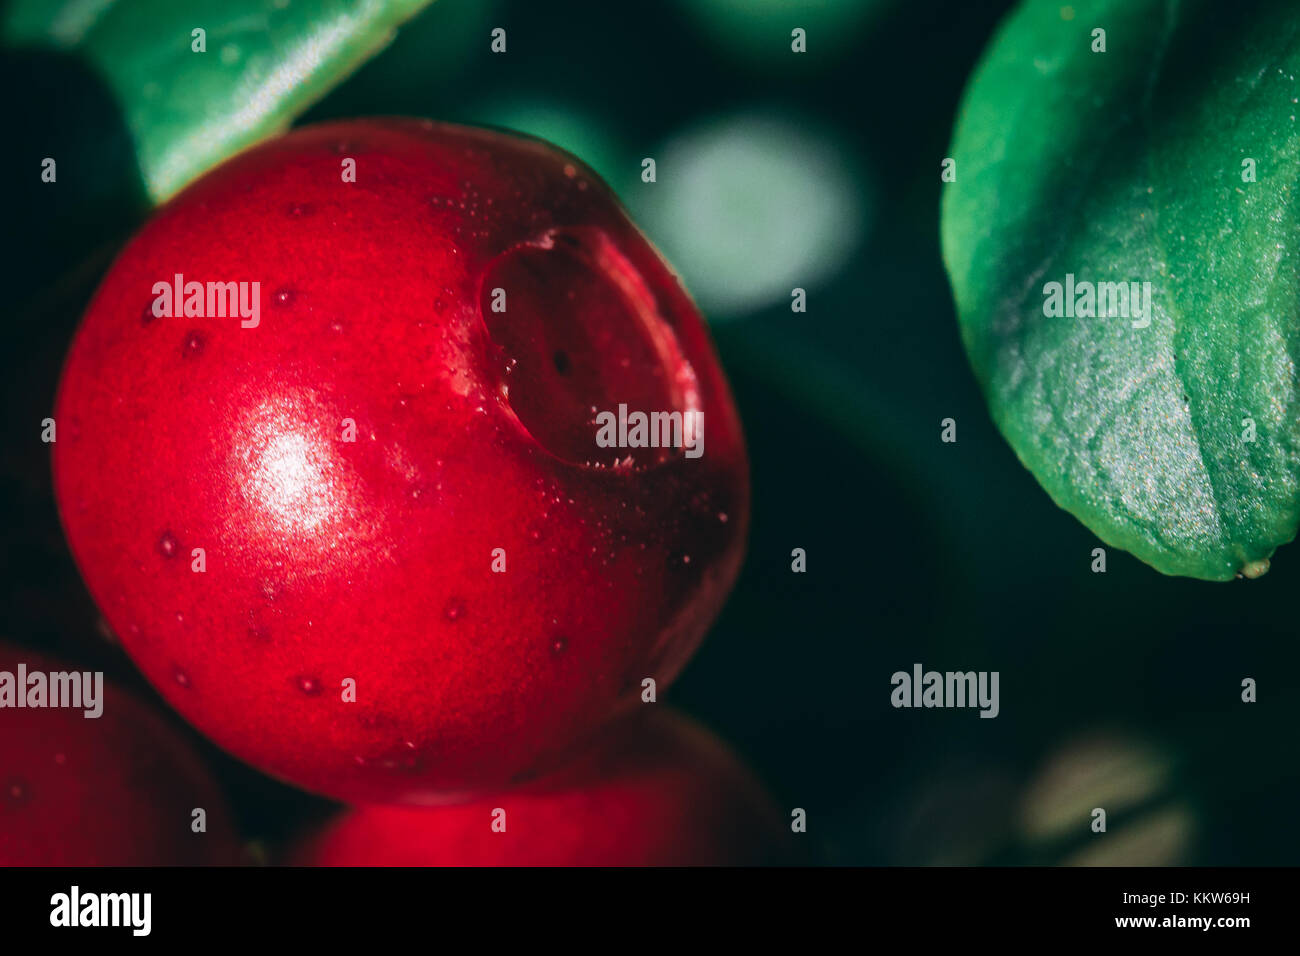 Lingonberry close-up - Stock Image